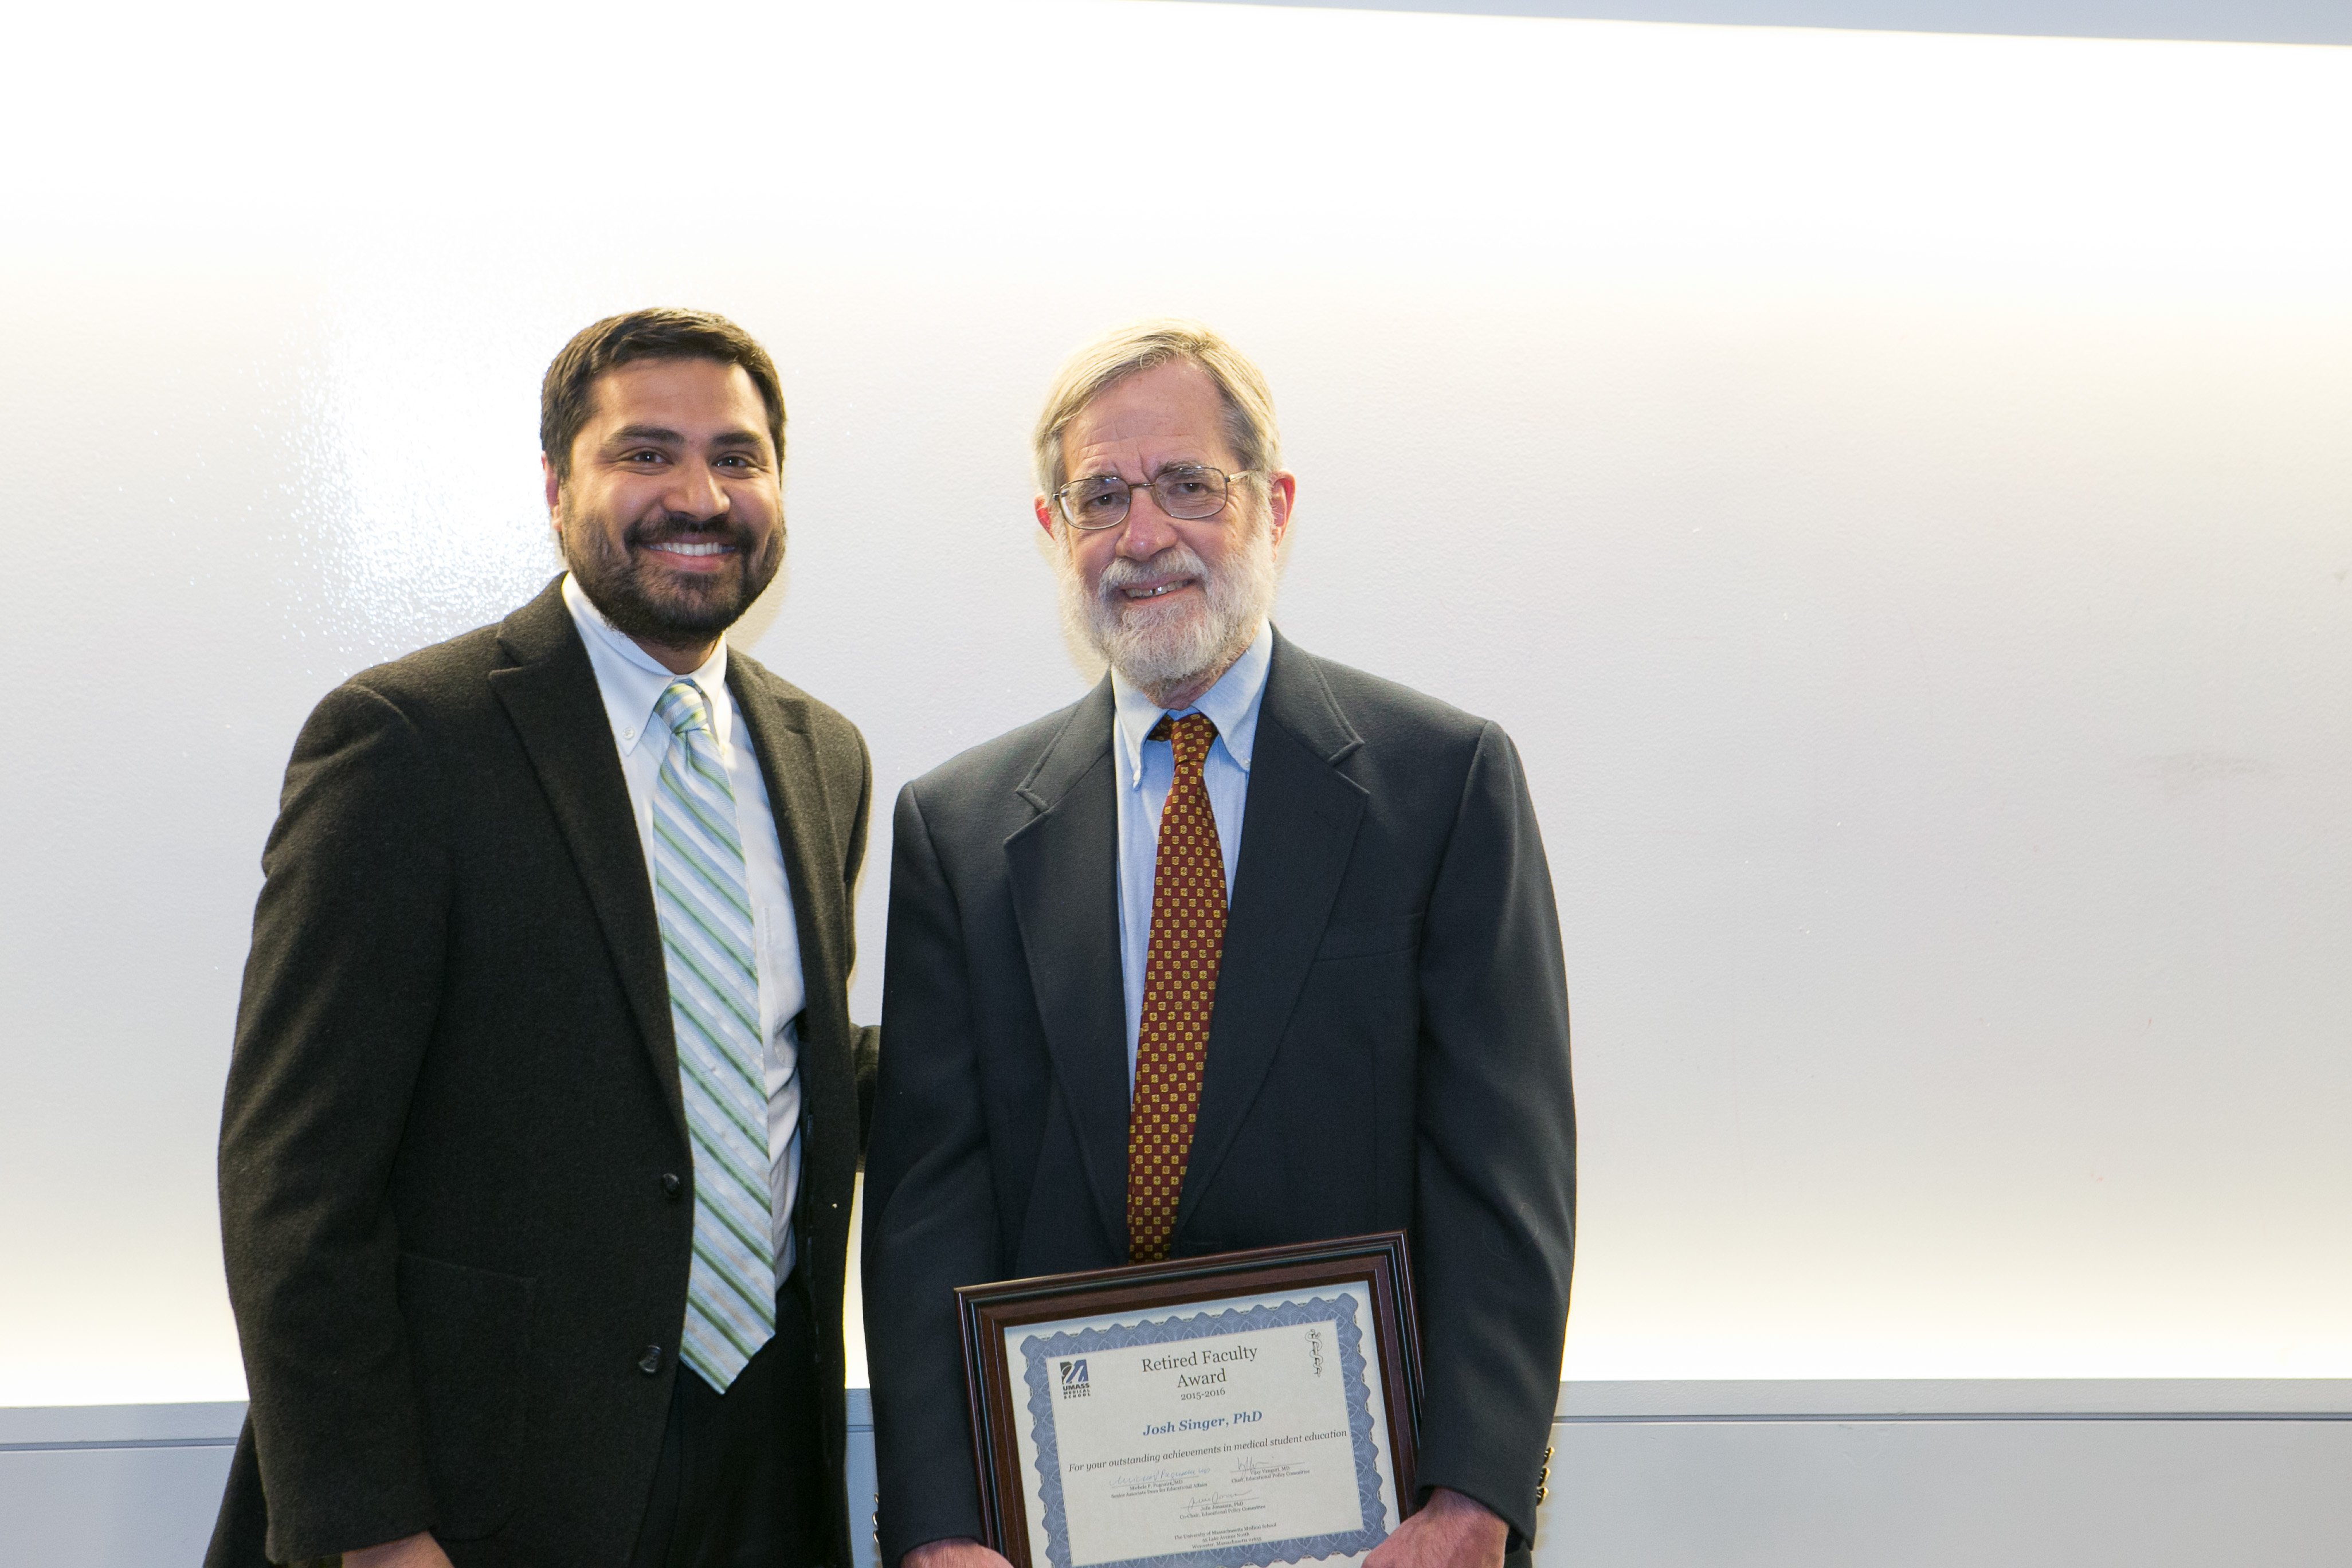 Vijay K. Vanguri, MD Chair, Educational Policy Committee Joshua J. Singer, PhD with the Retired Faculty Teaching Award.